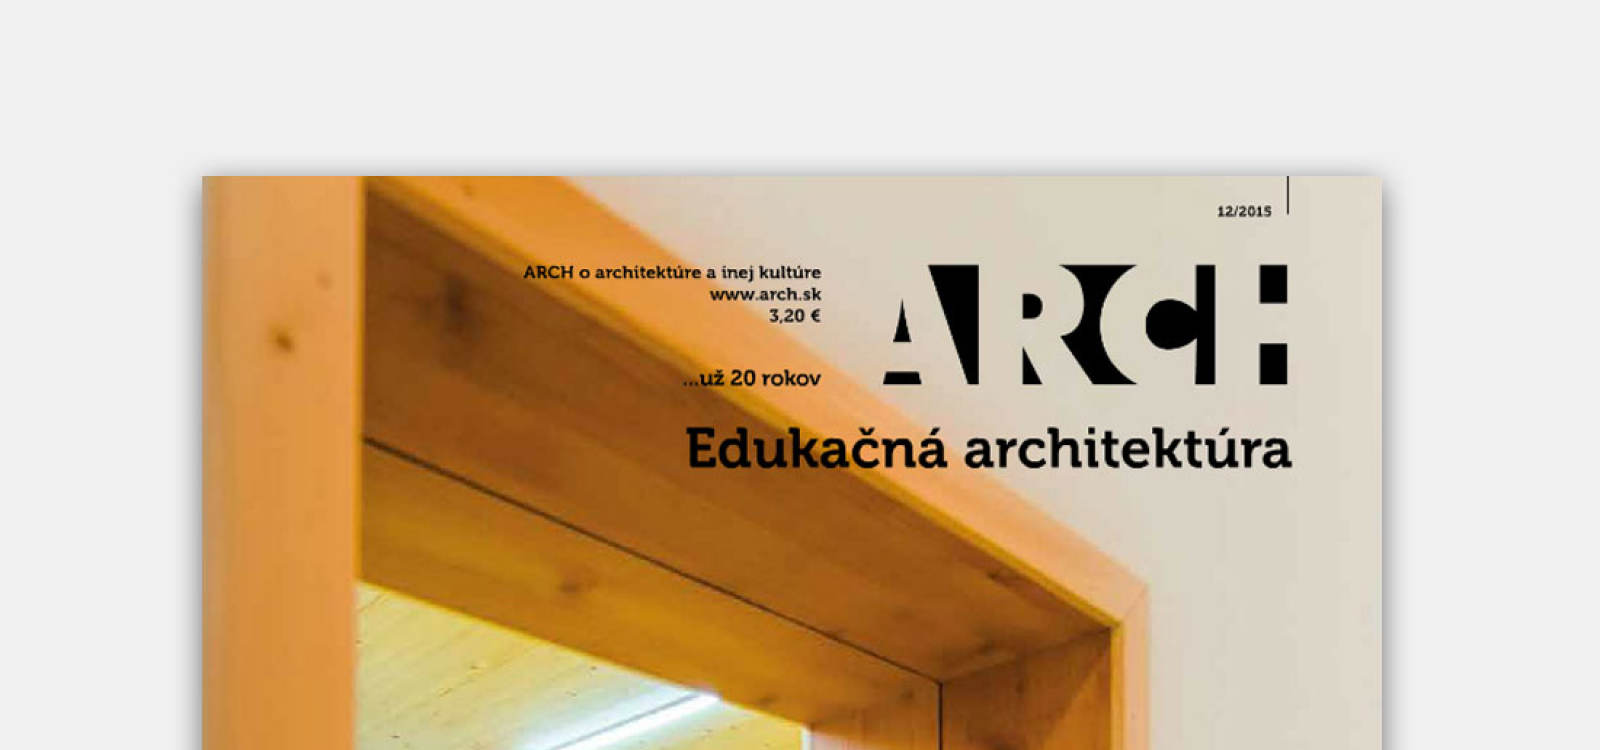 MORPH project in the new issue of ARCH magazine | News | Atrium Architekti